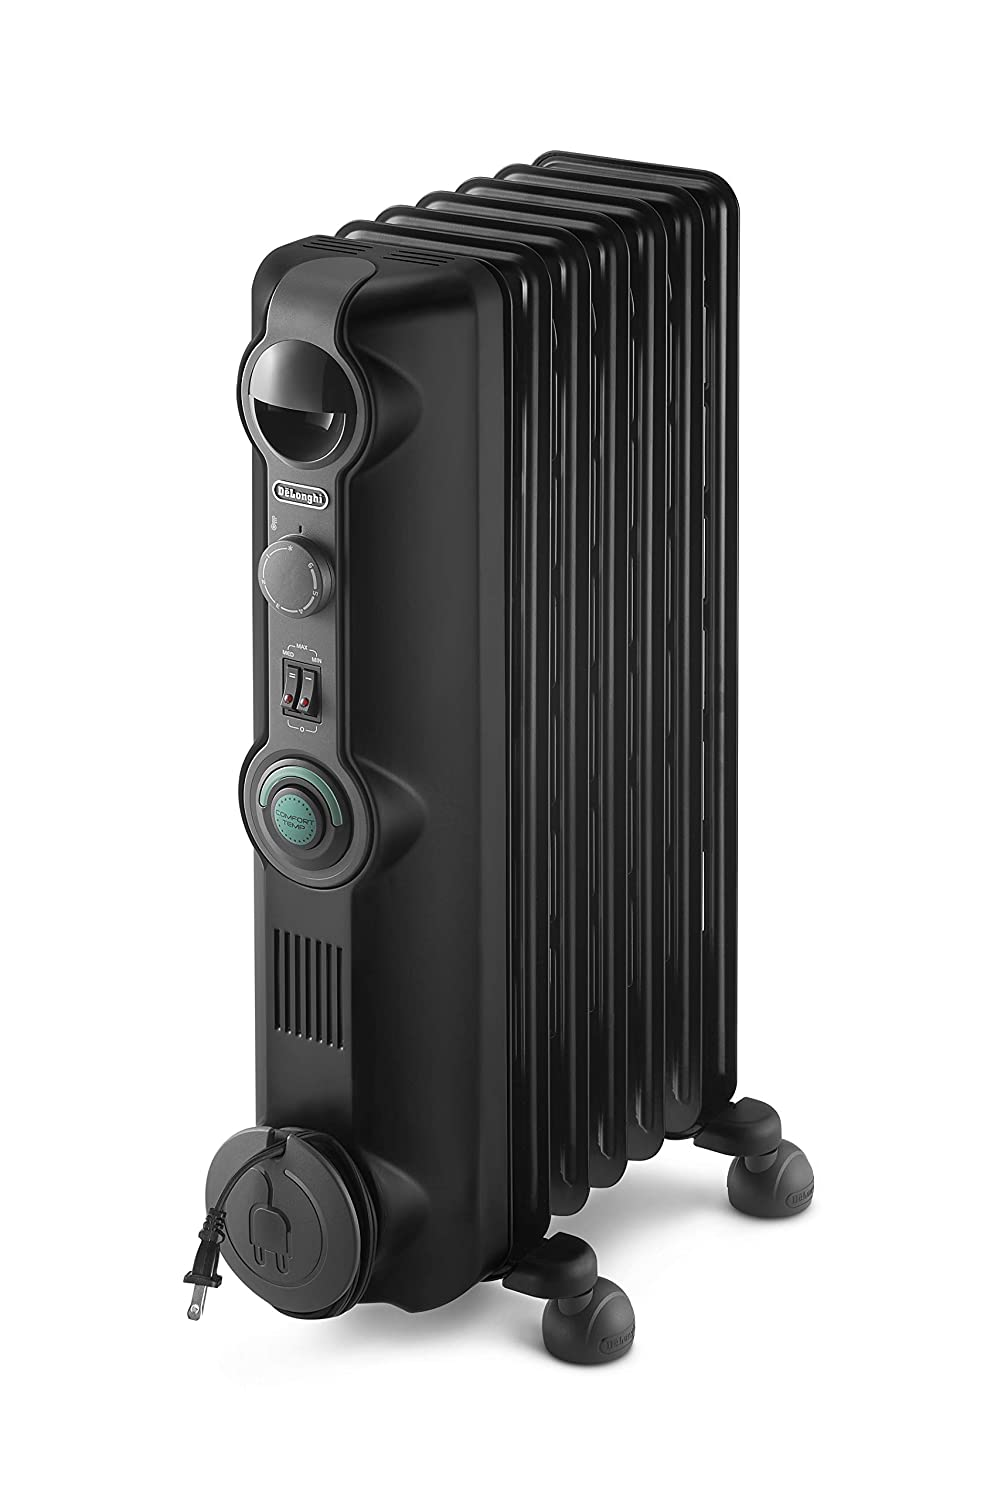 DeLonghi Comfort Temp Full Room Radiant Heater Black